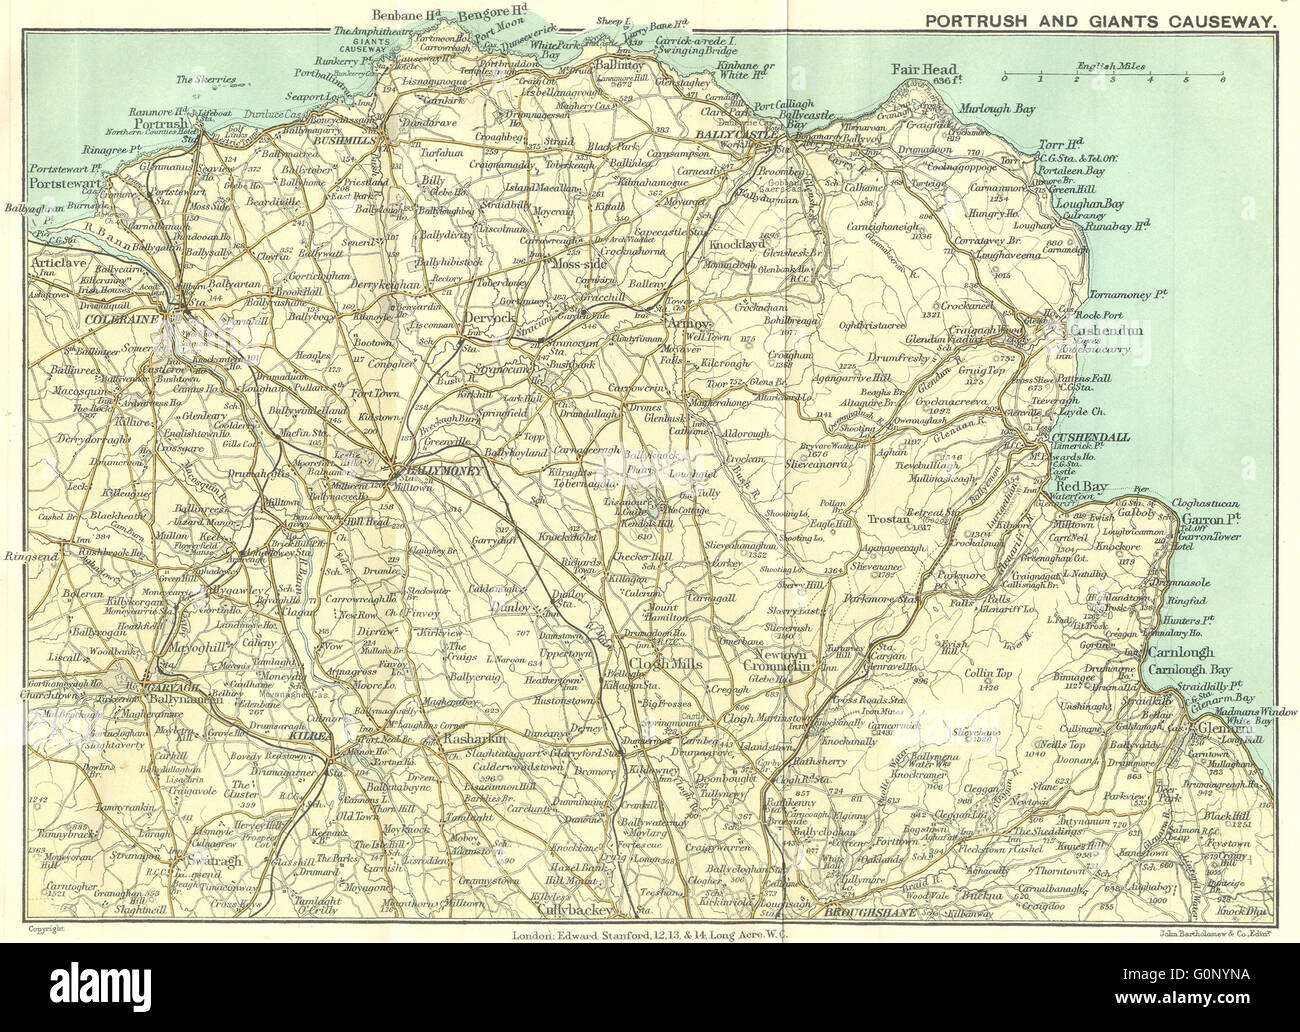 ULSTER: Portrush & Giants Causeway, 1912 antique map - Stock Image